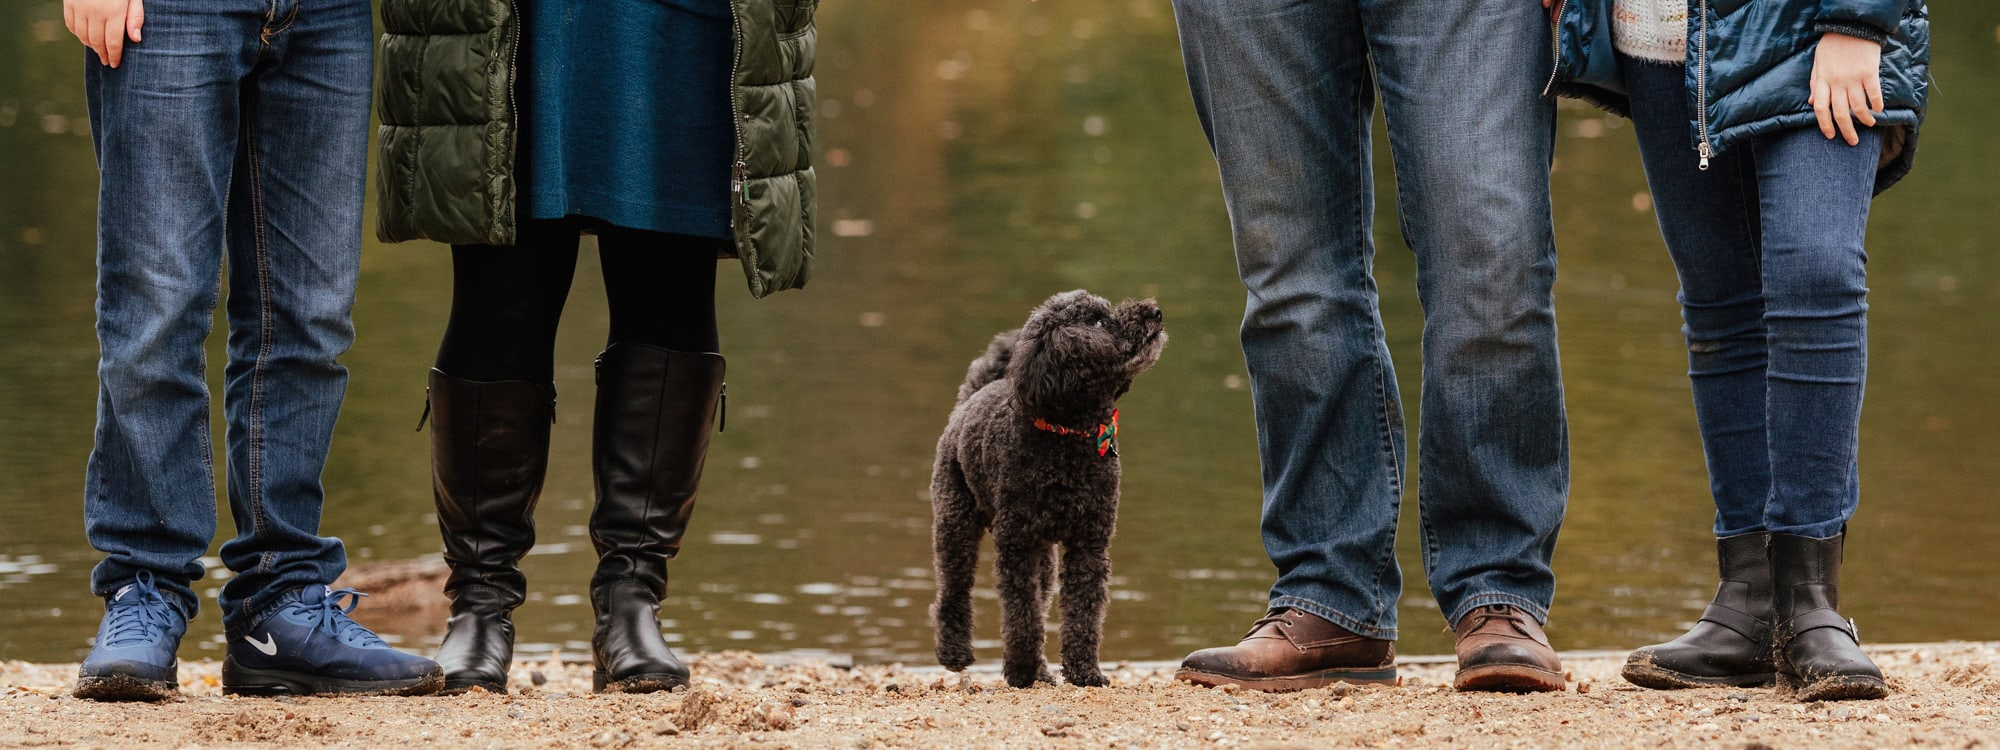 Family standing with their dog, all focus on the dog and families legs, essex dog photographer